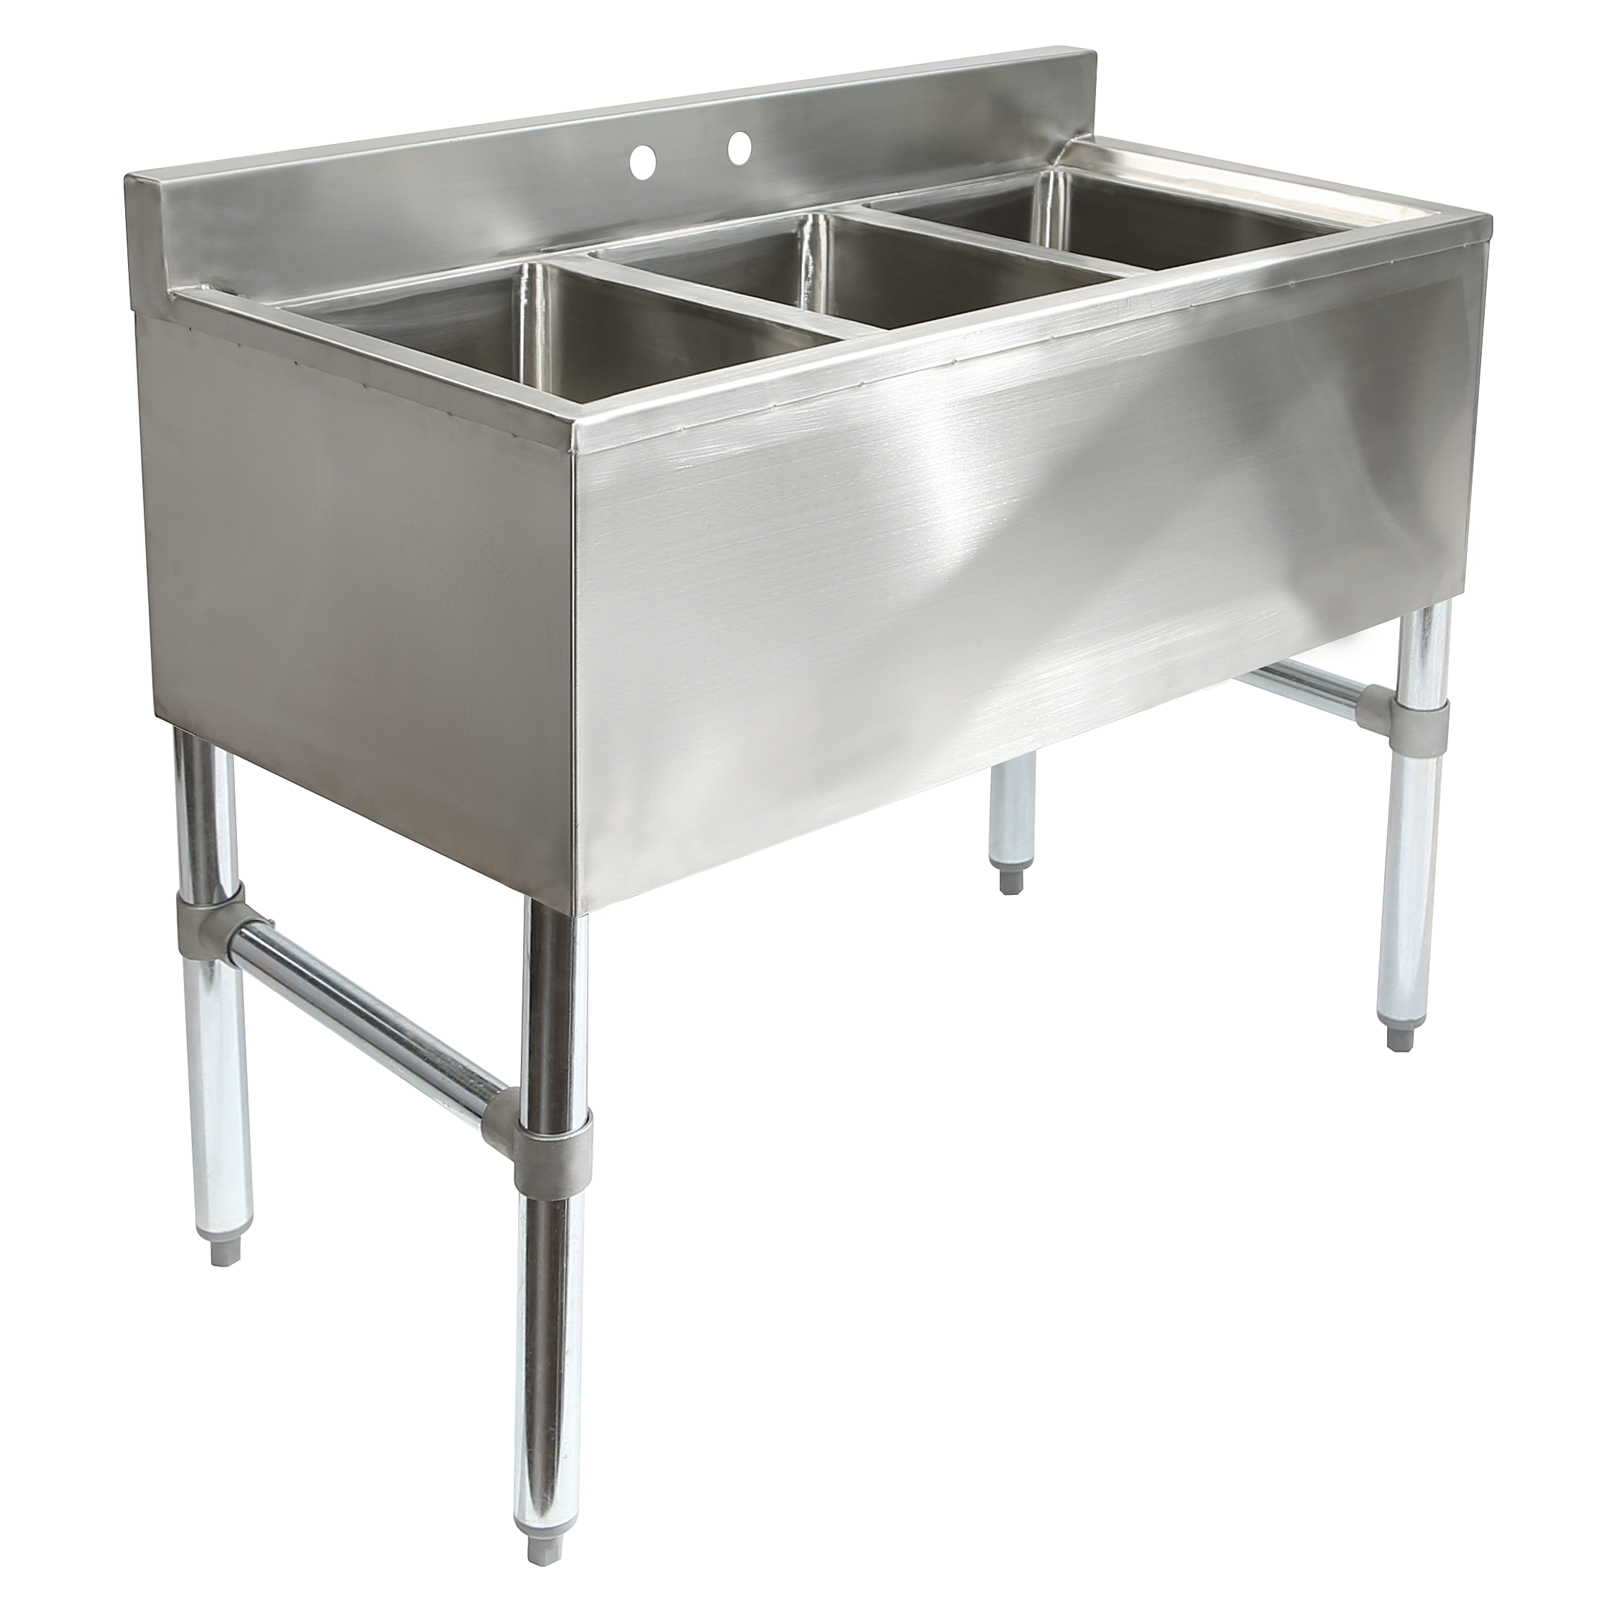 Gridmann 3 Compartment NSF Stainless Steel Commercial Bar Sink   Walmart.com